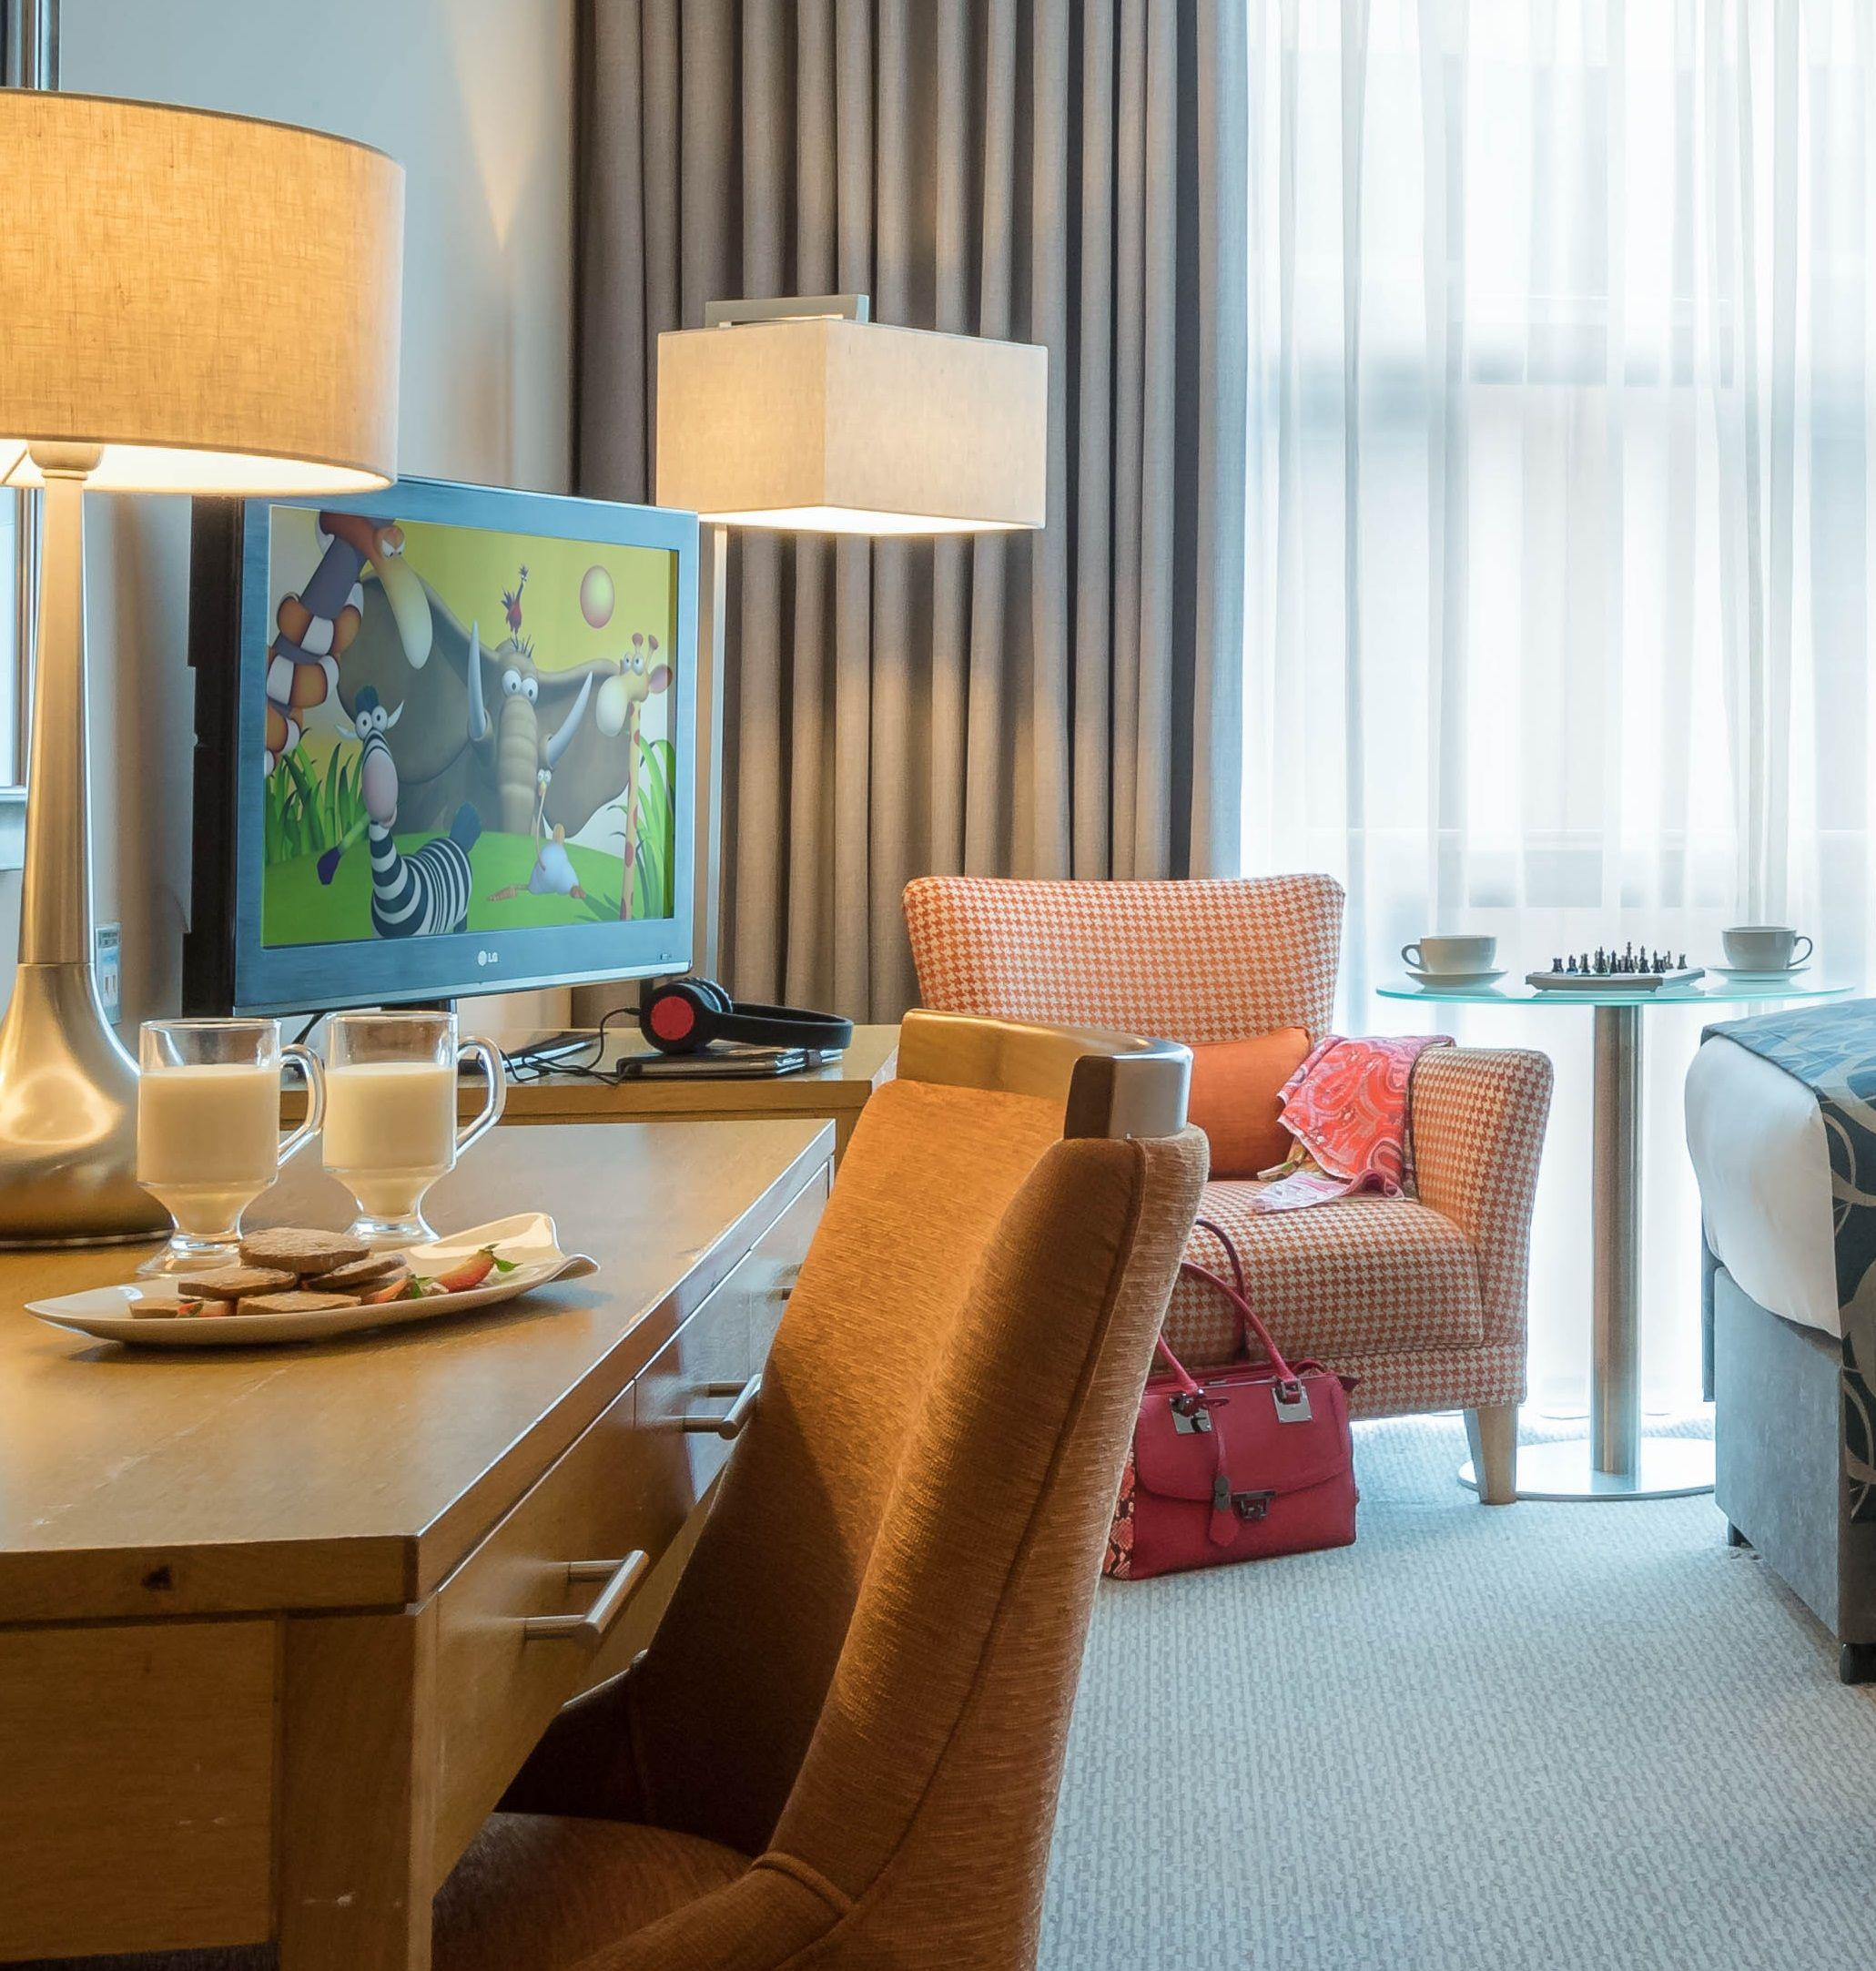 Hotel Rooms | Clayton hotel, Superior room, Hotels room